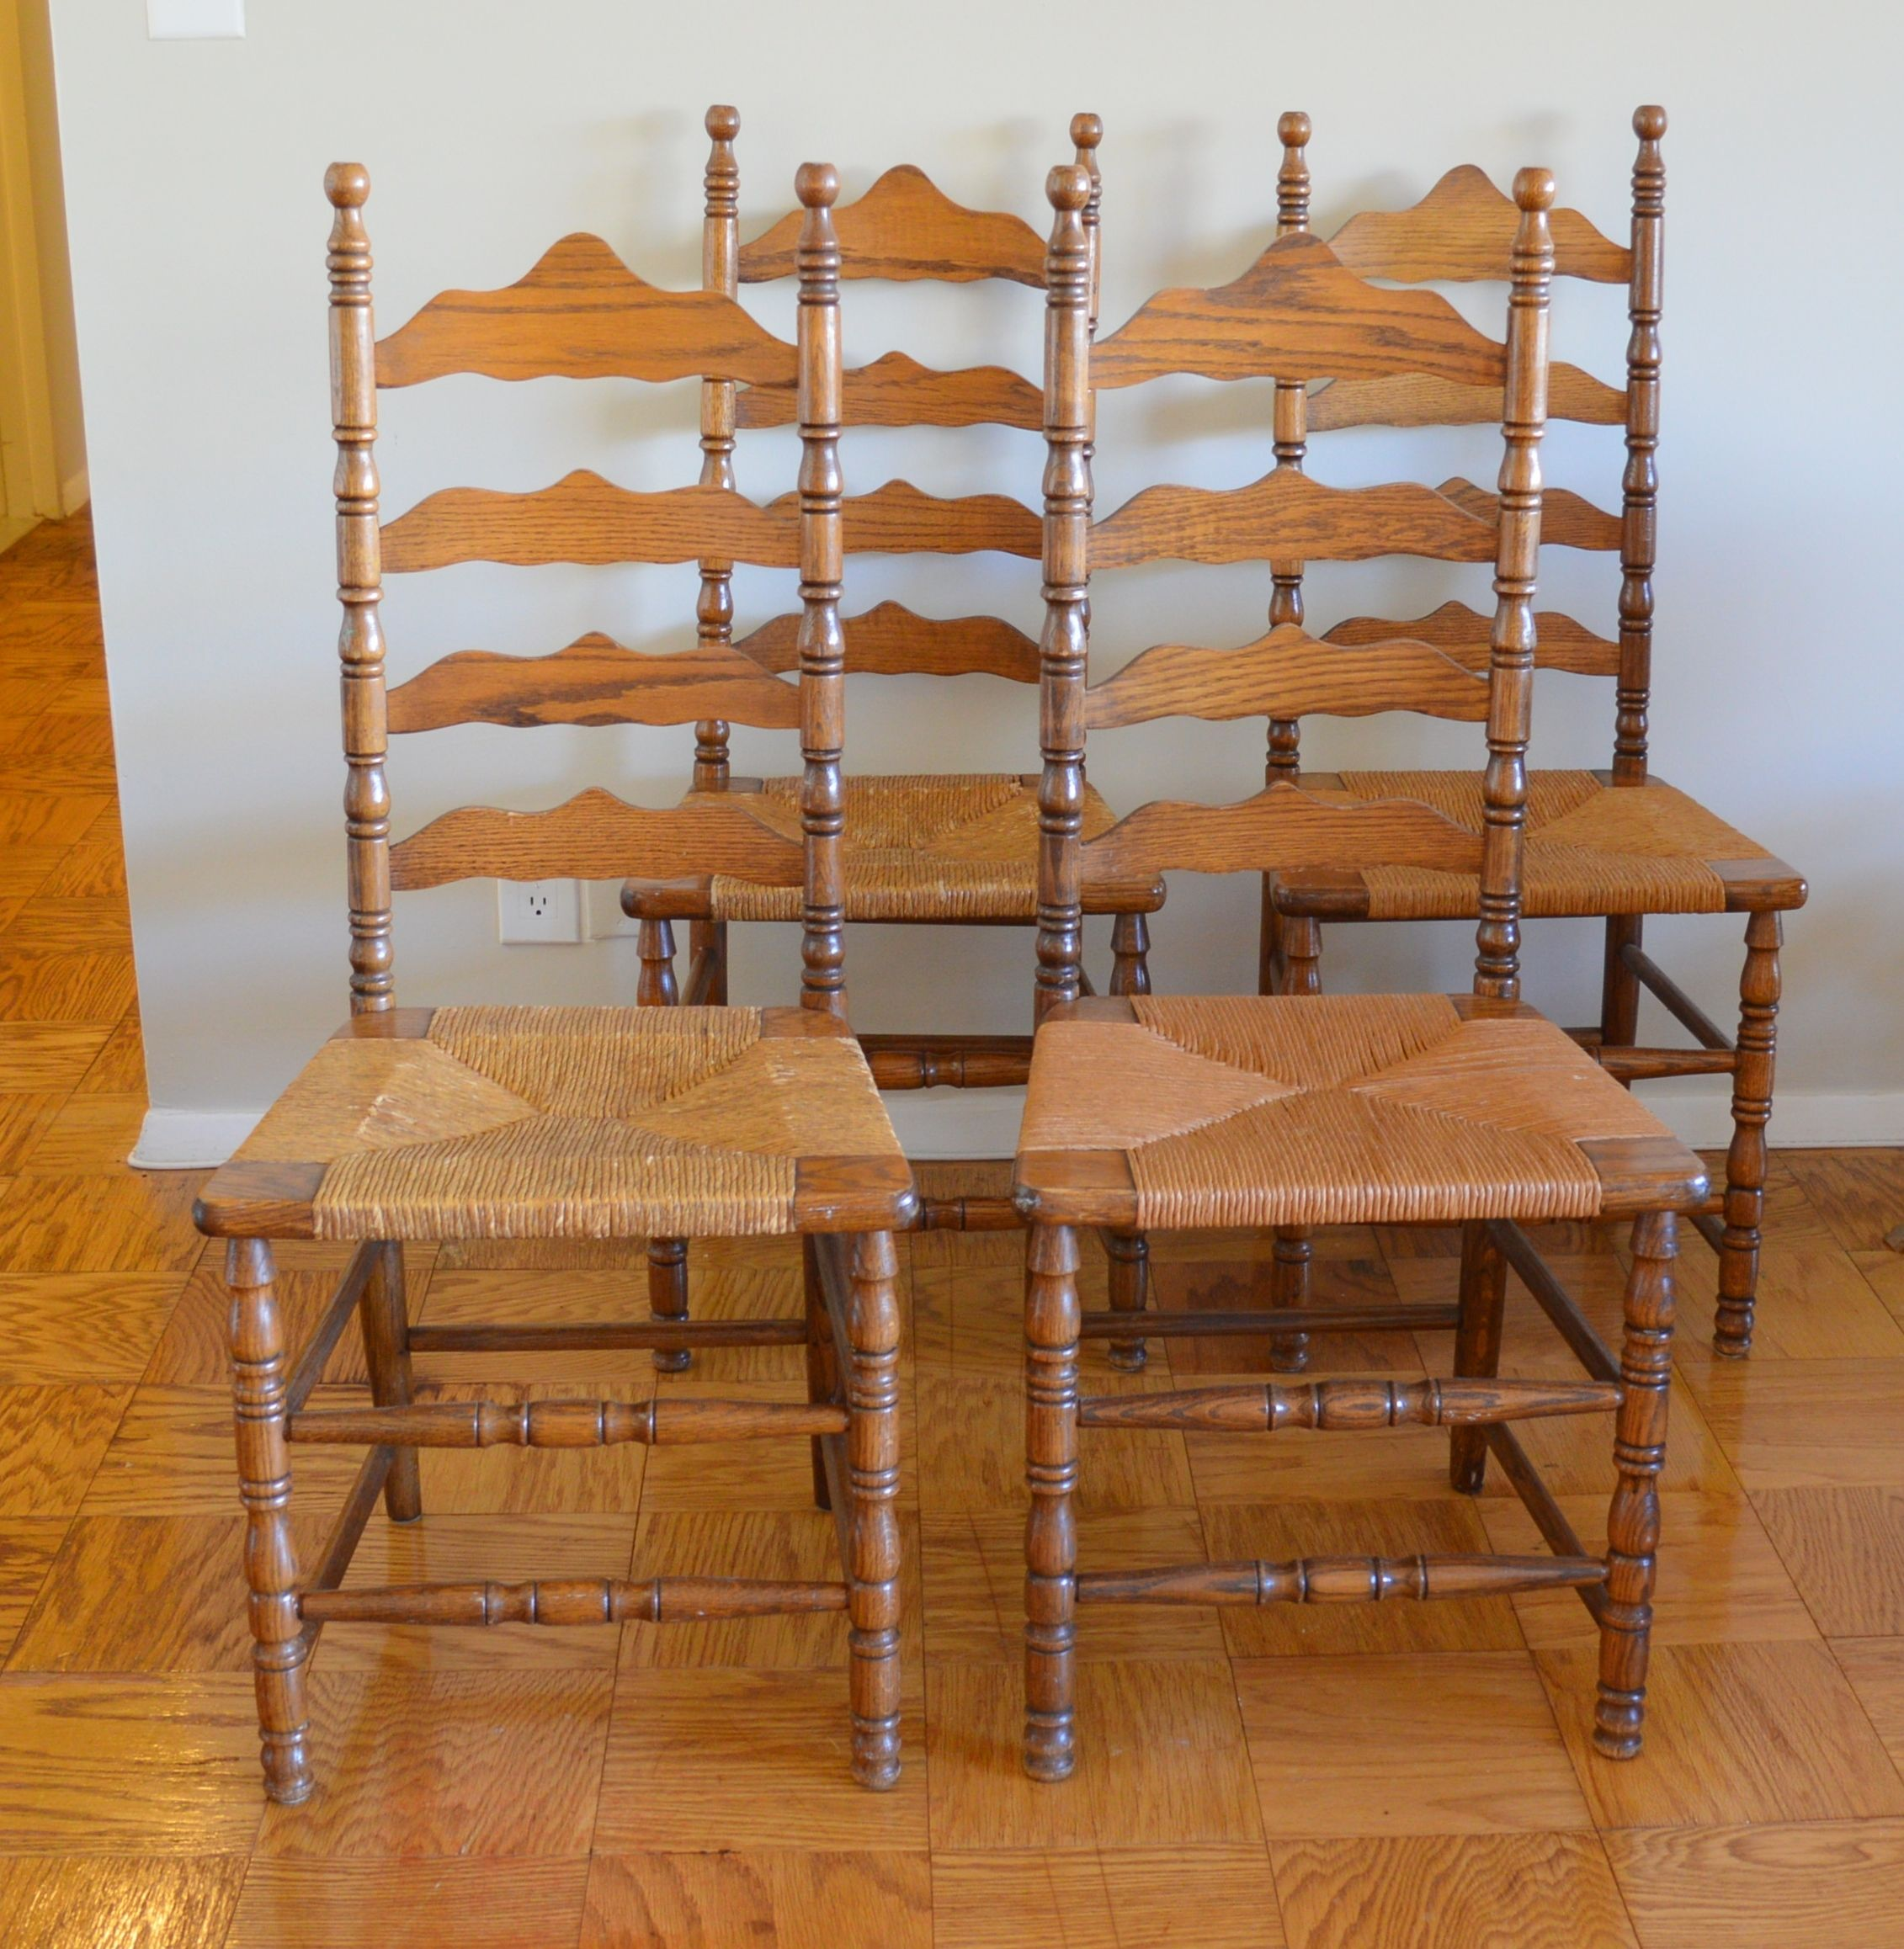 Decorate Your Dinning With These Lovely Christmas Chair: Picked Up These 4 Vintage Ladder Back Chairs By The Boling